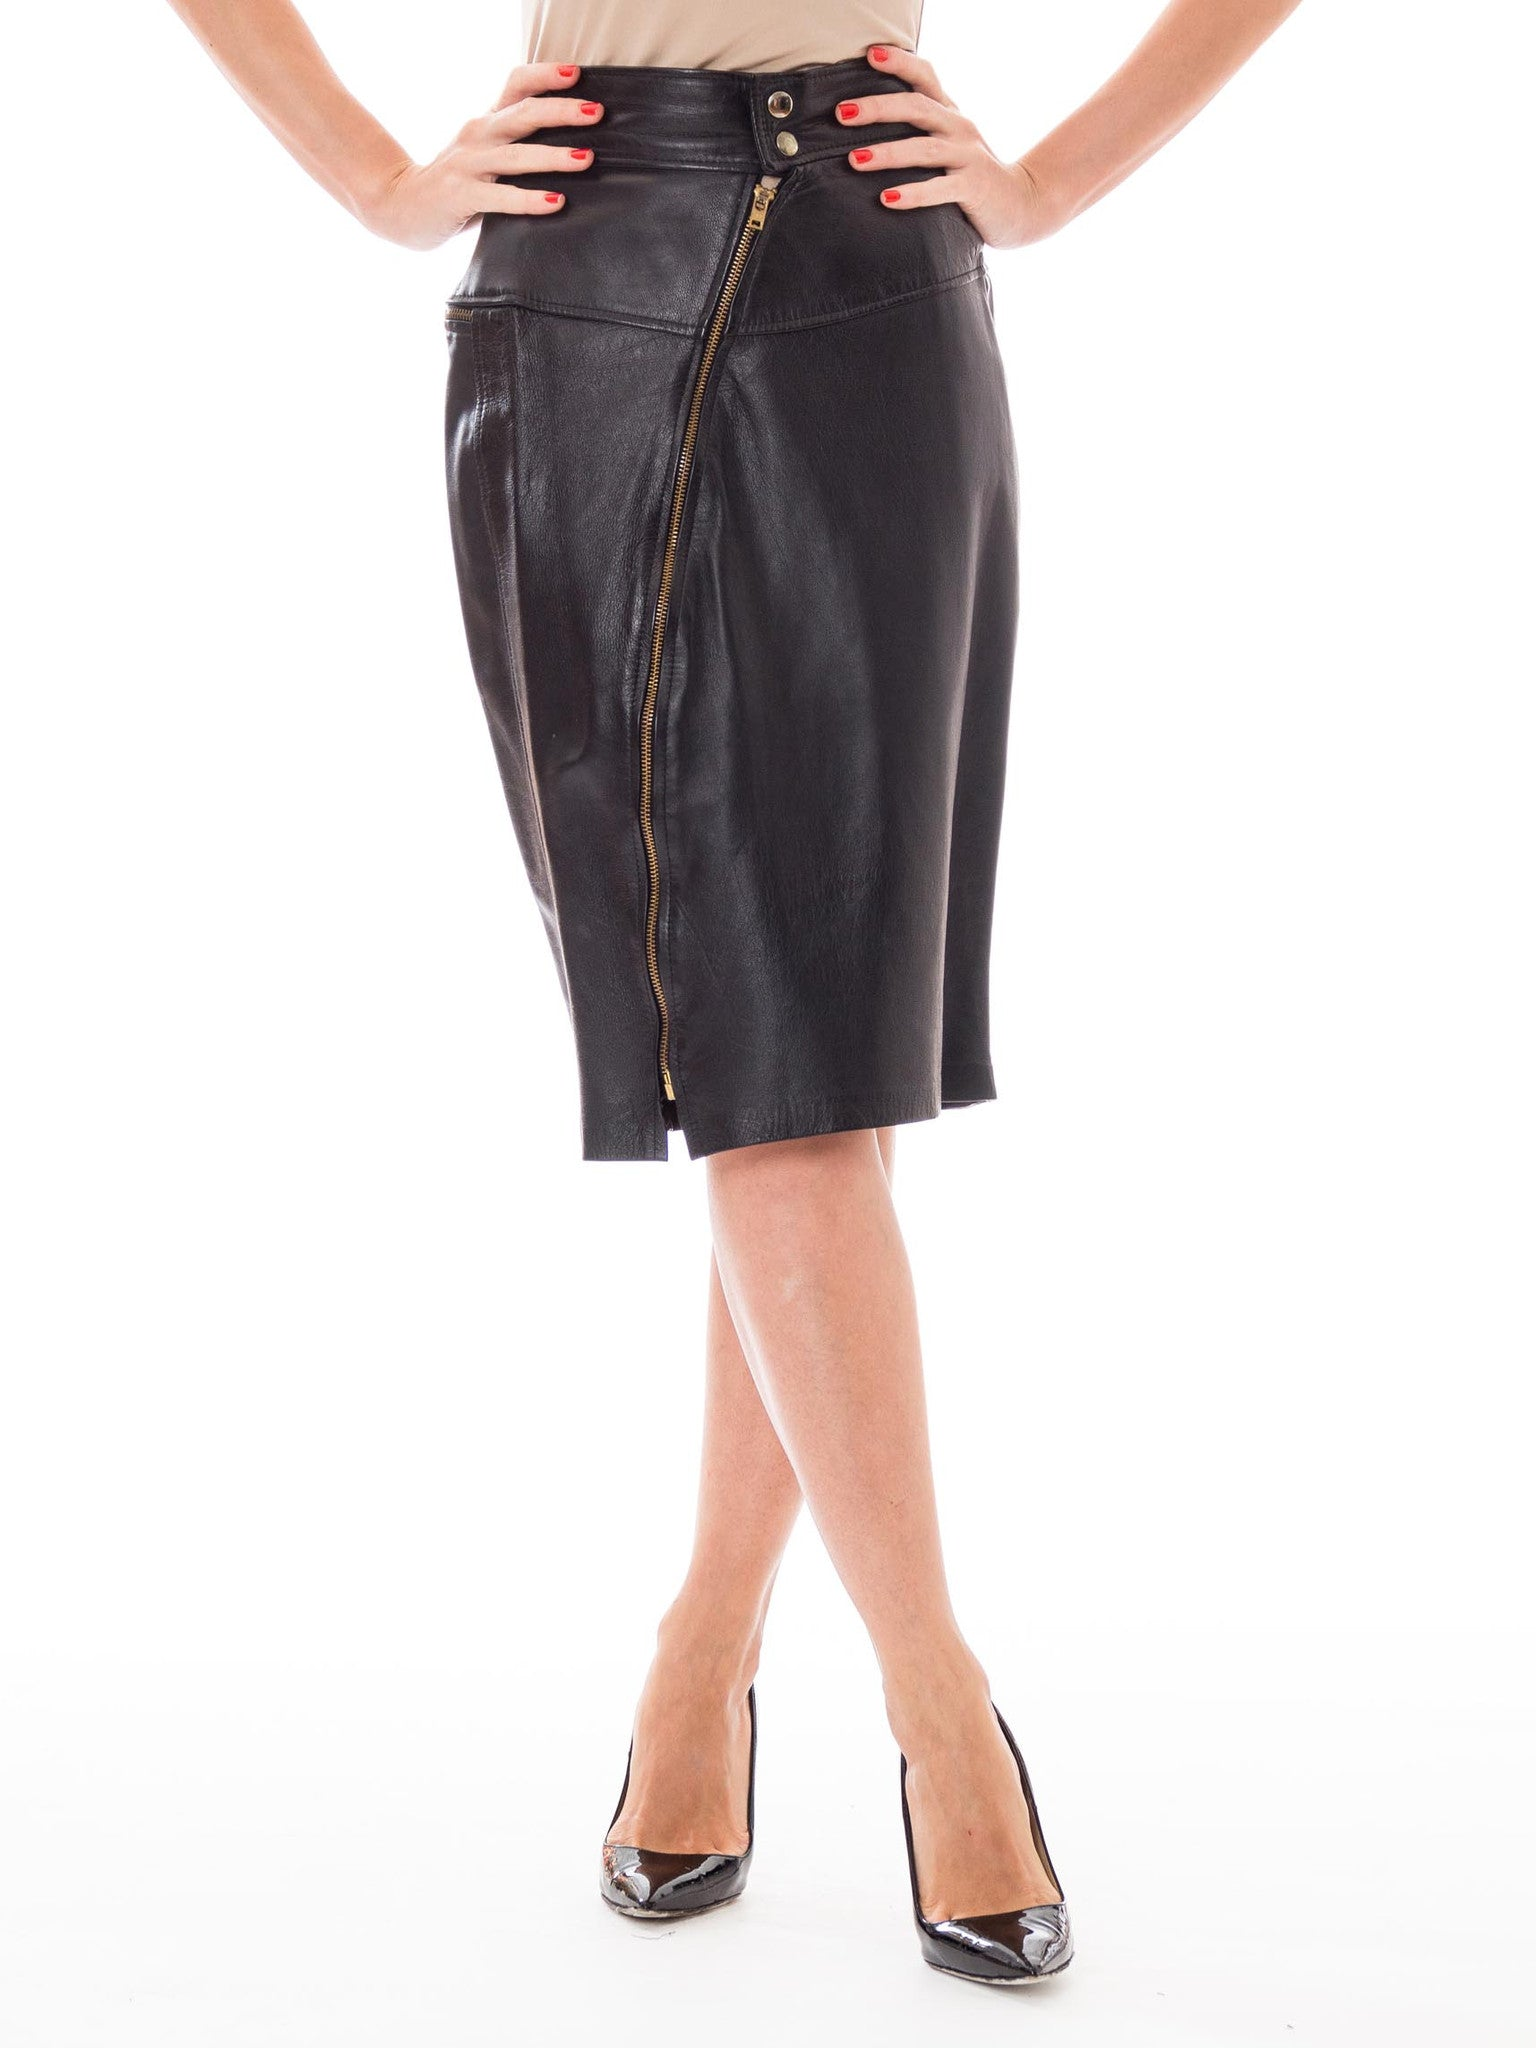 b146225dc 1980s Black Leather Biker Chick High Waisted Pencil Skirt with Diagonal  Zipper